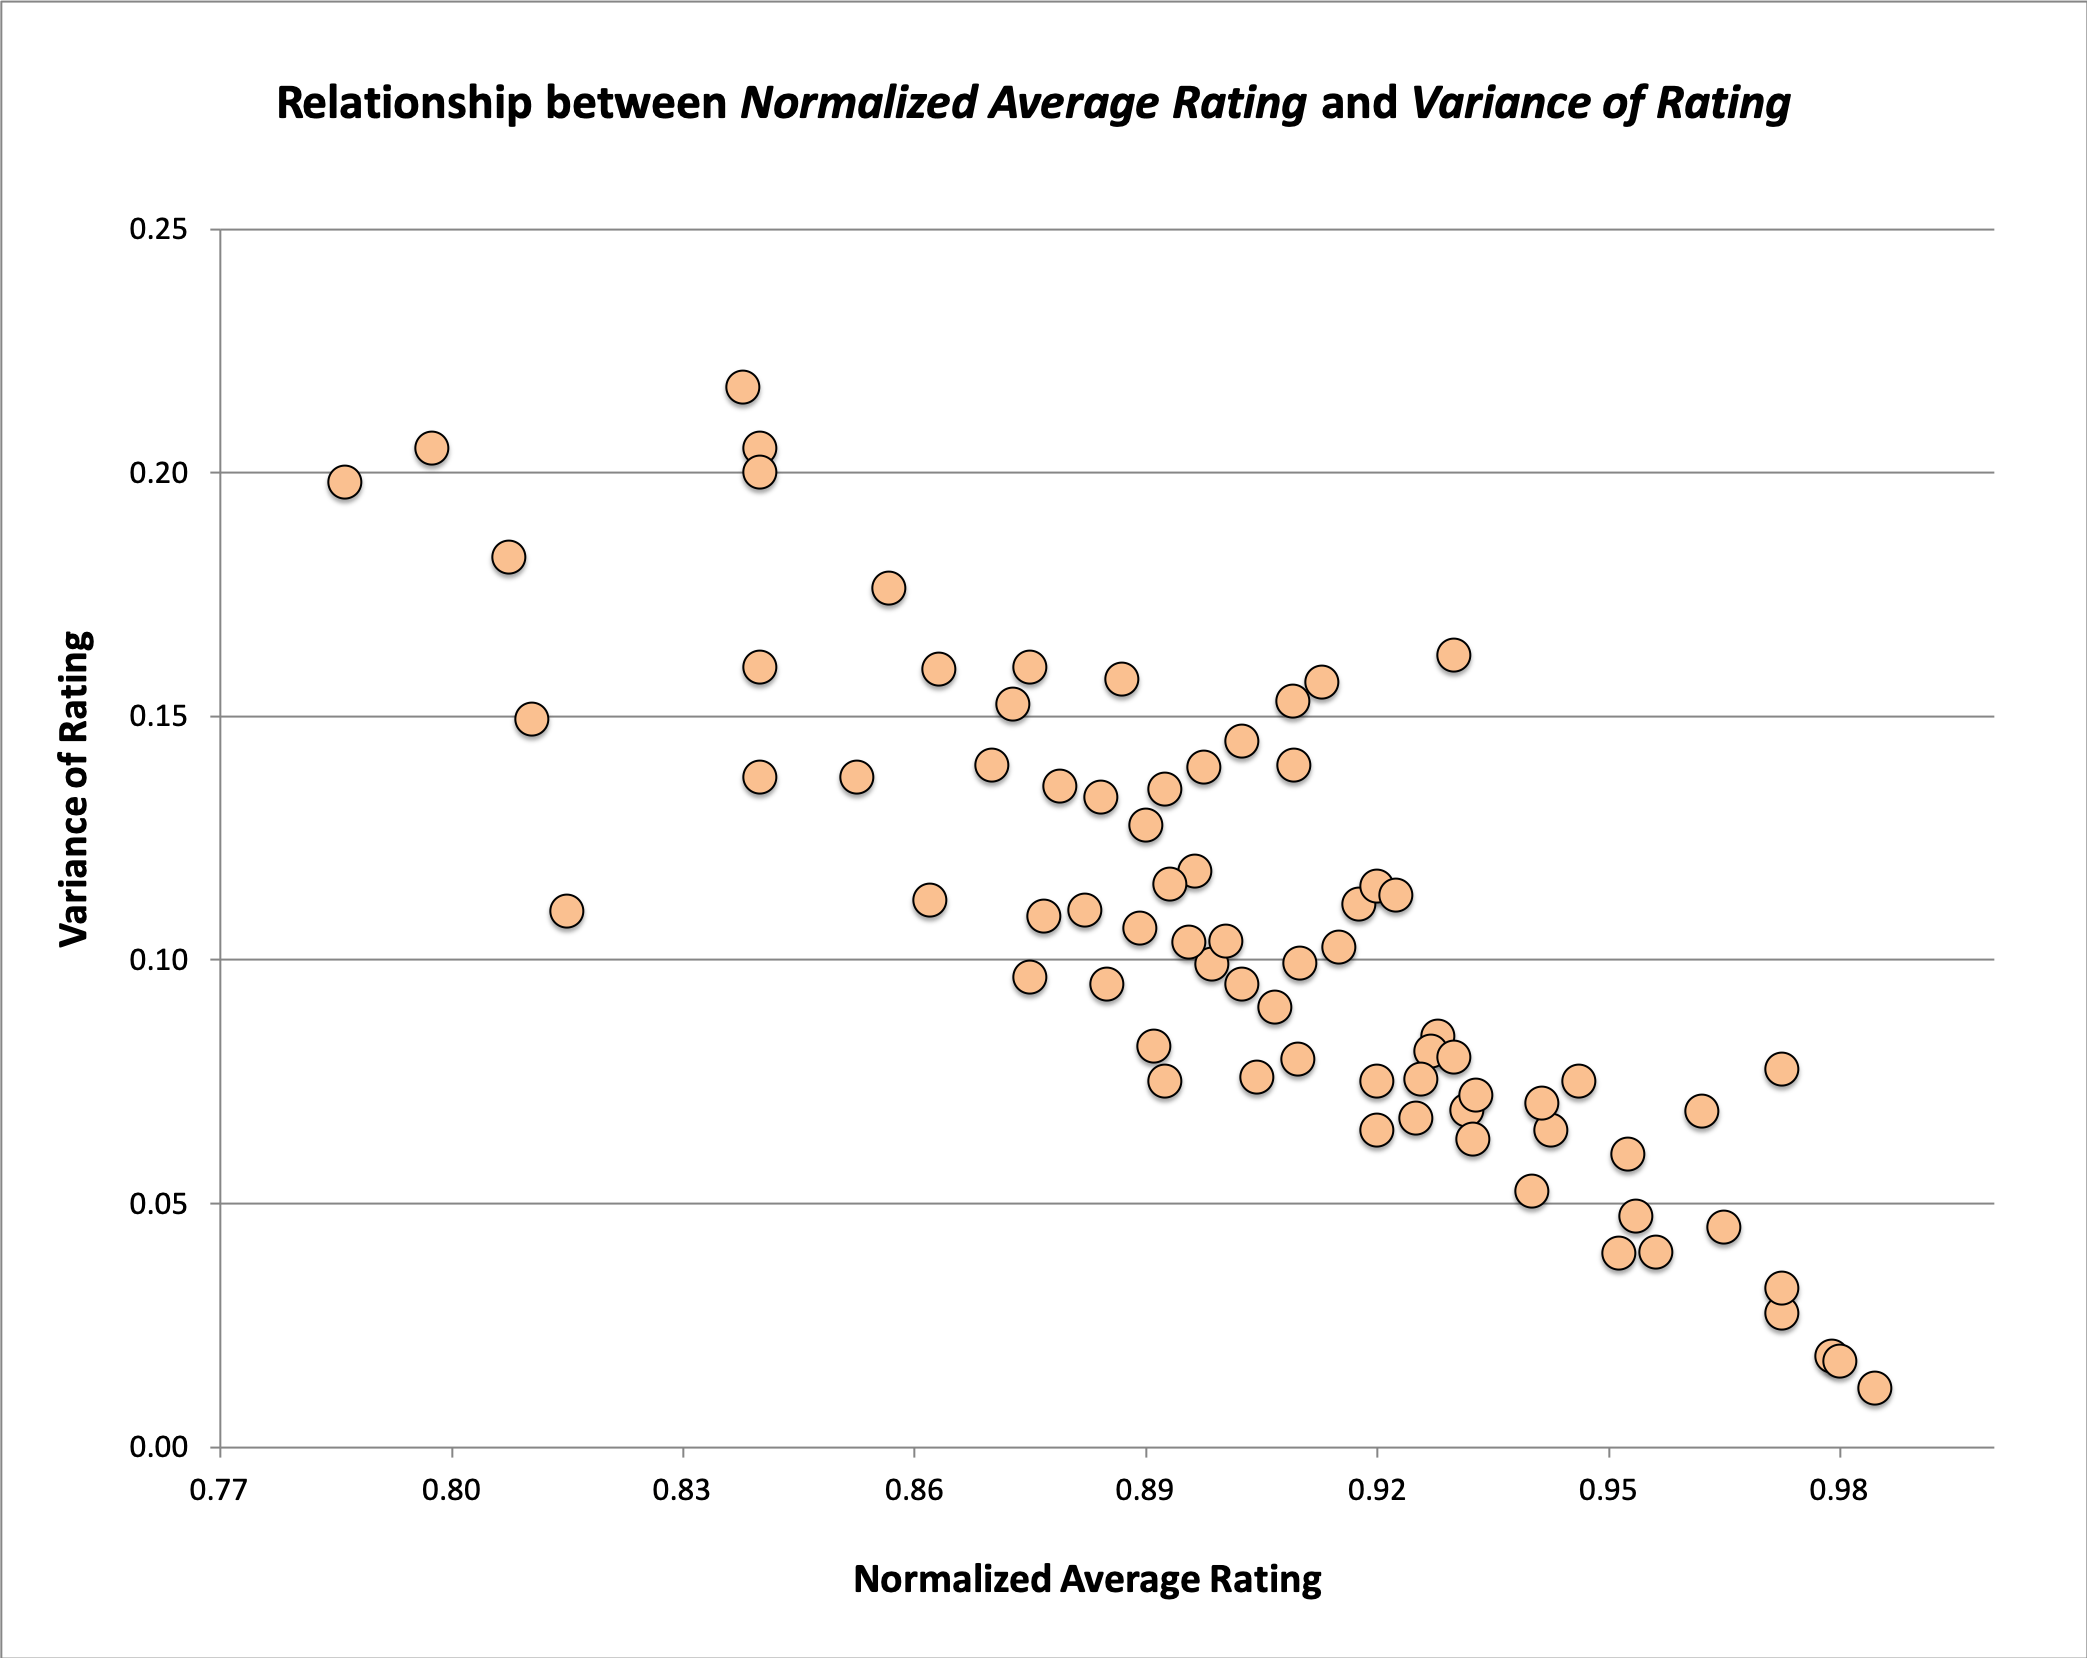 Average Rating versus Variance